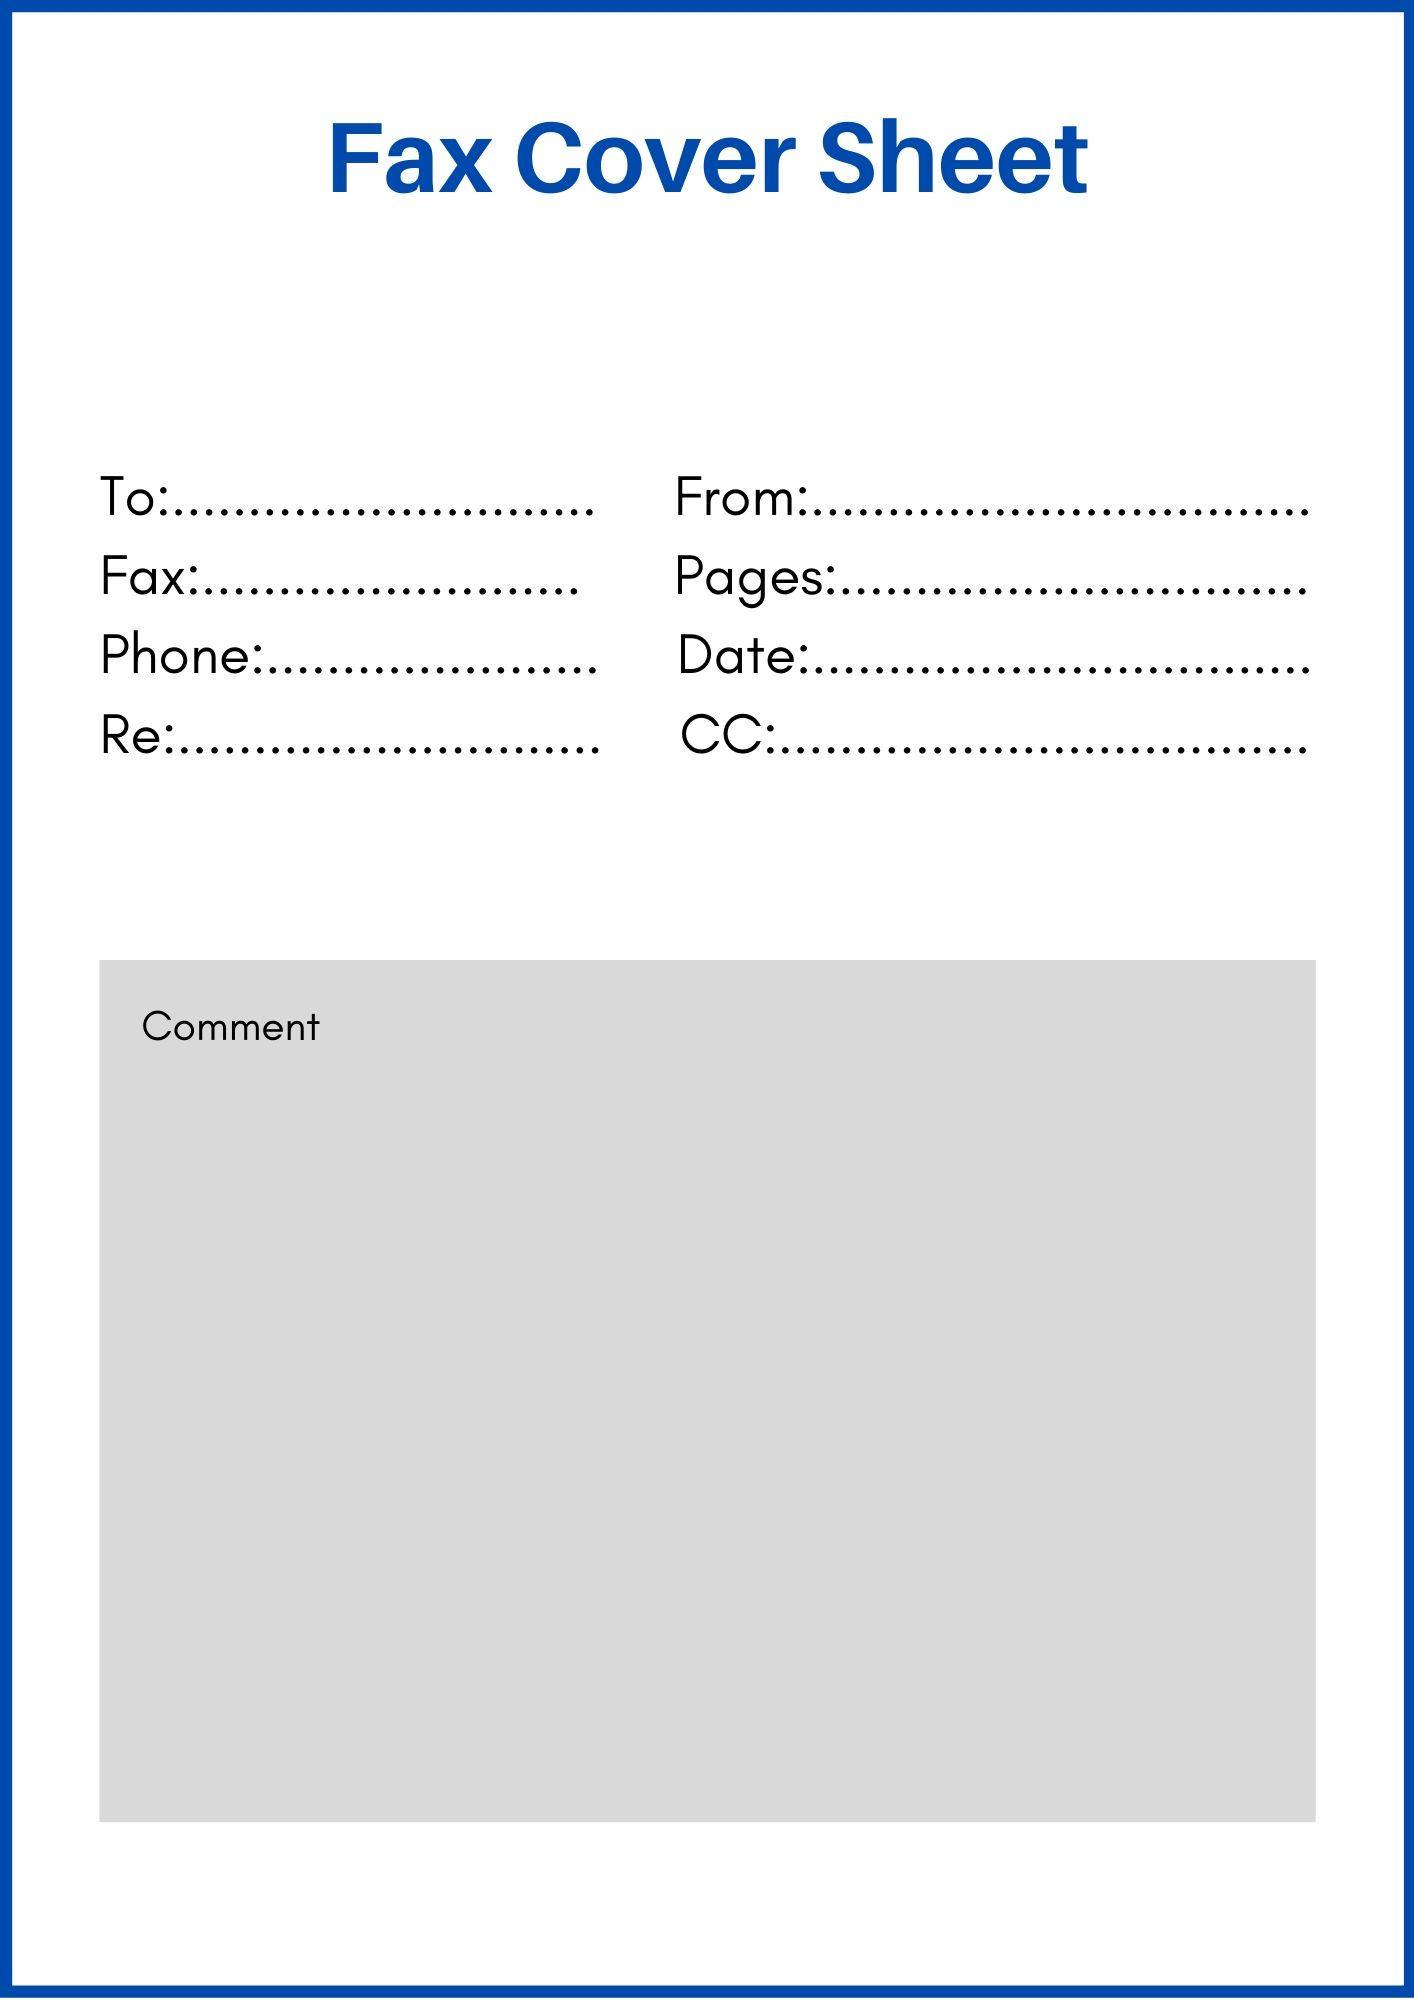 Standard fax cover sheet Word